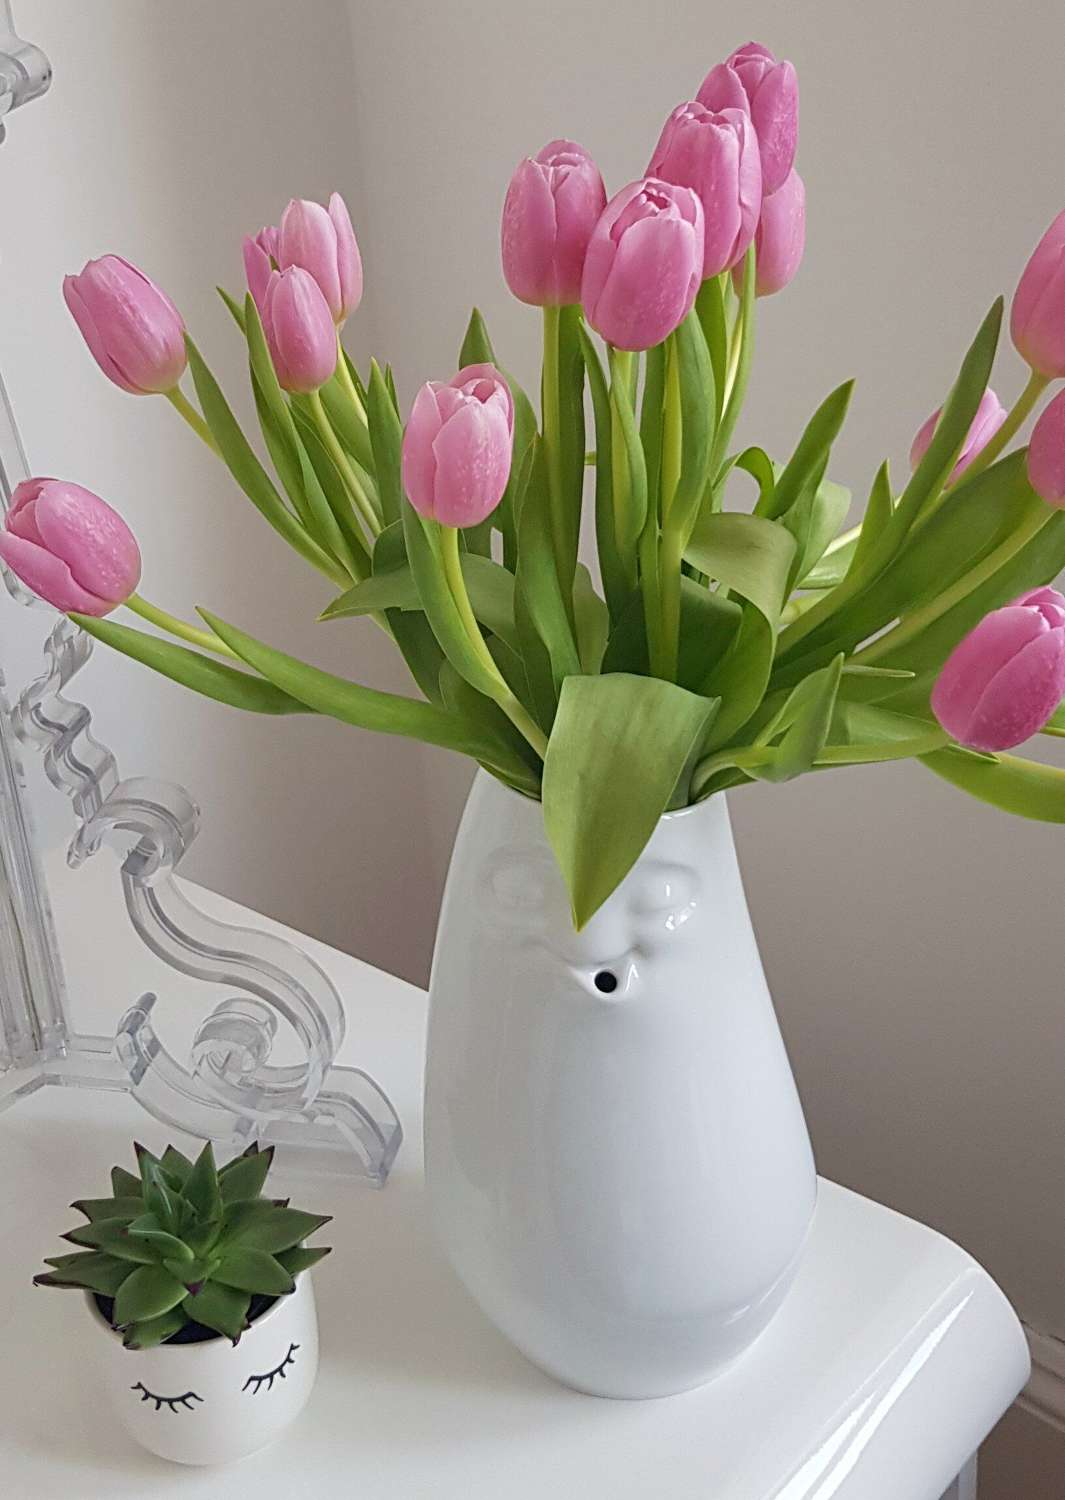 White porcelain vase with smiley face